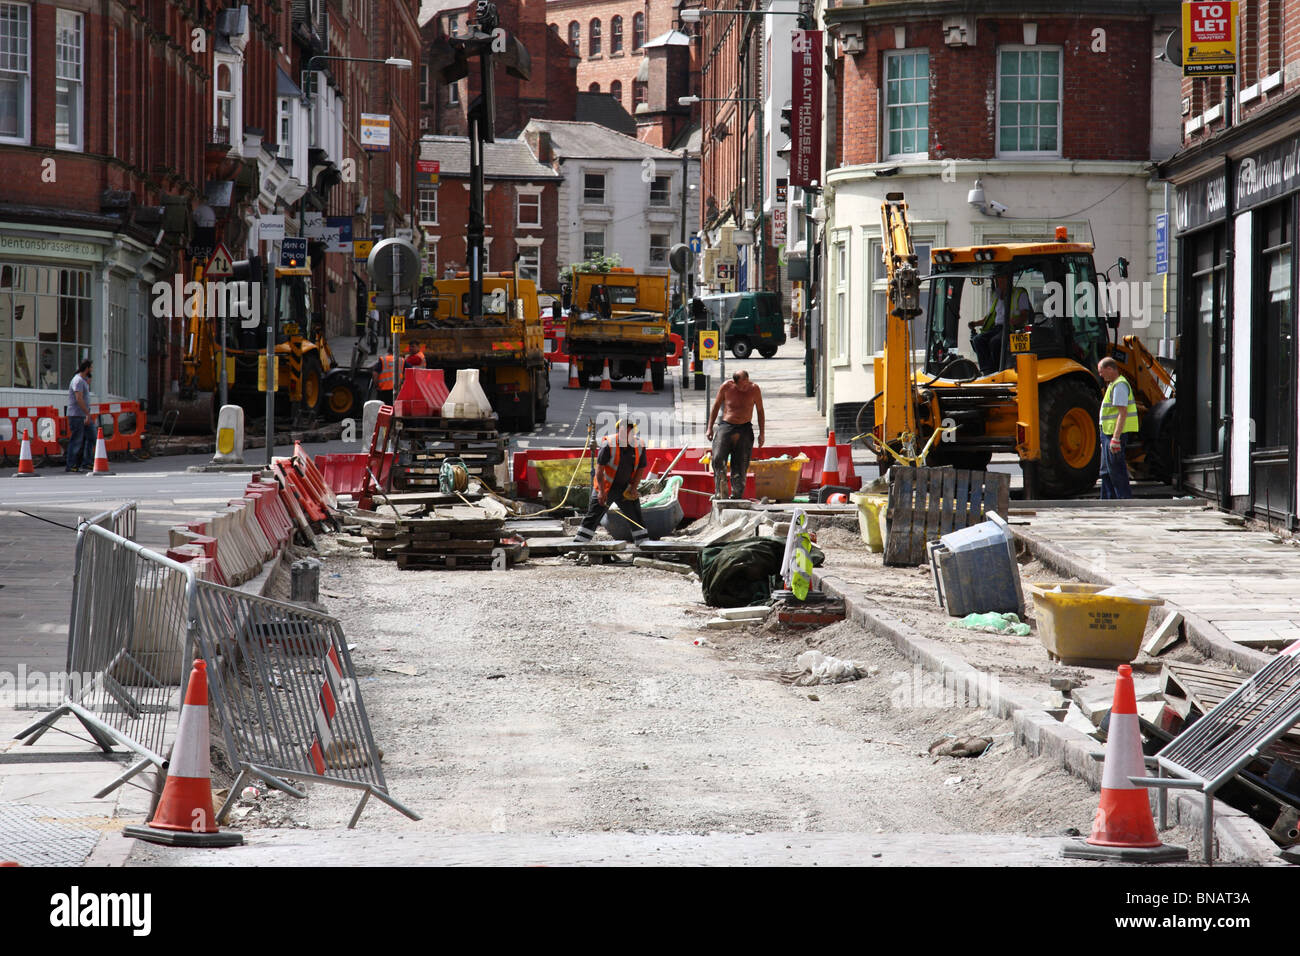 Roadworks in a U.K. city. - Stock Image